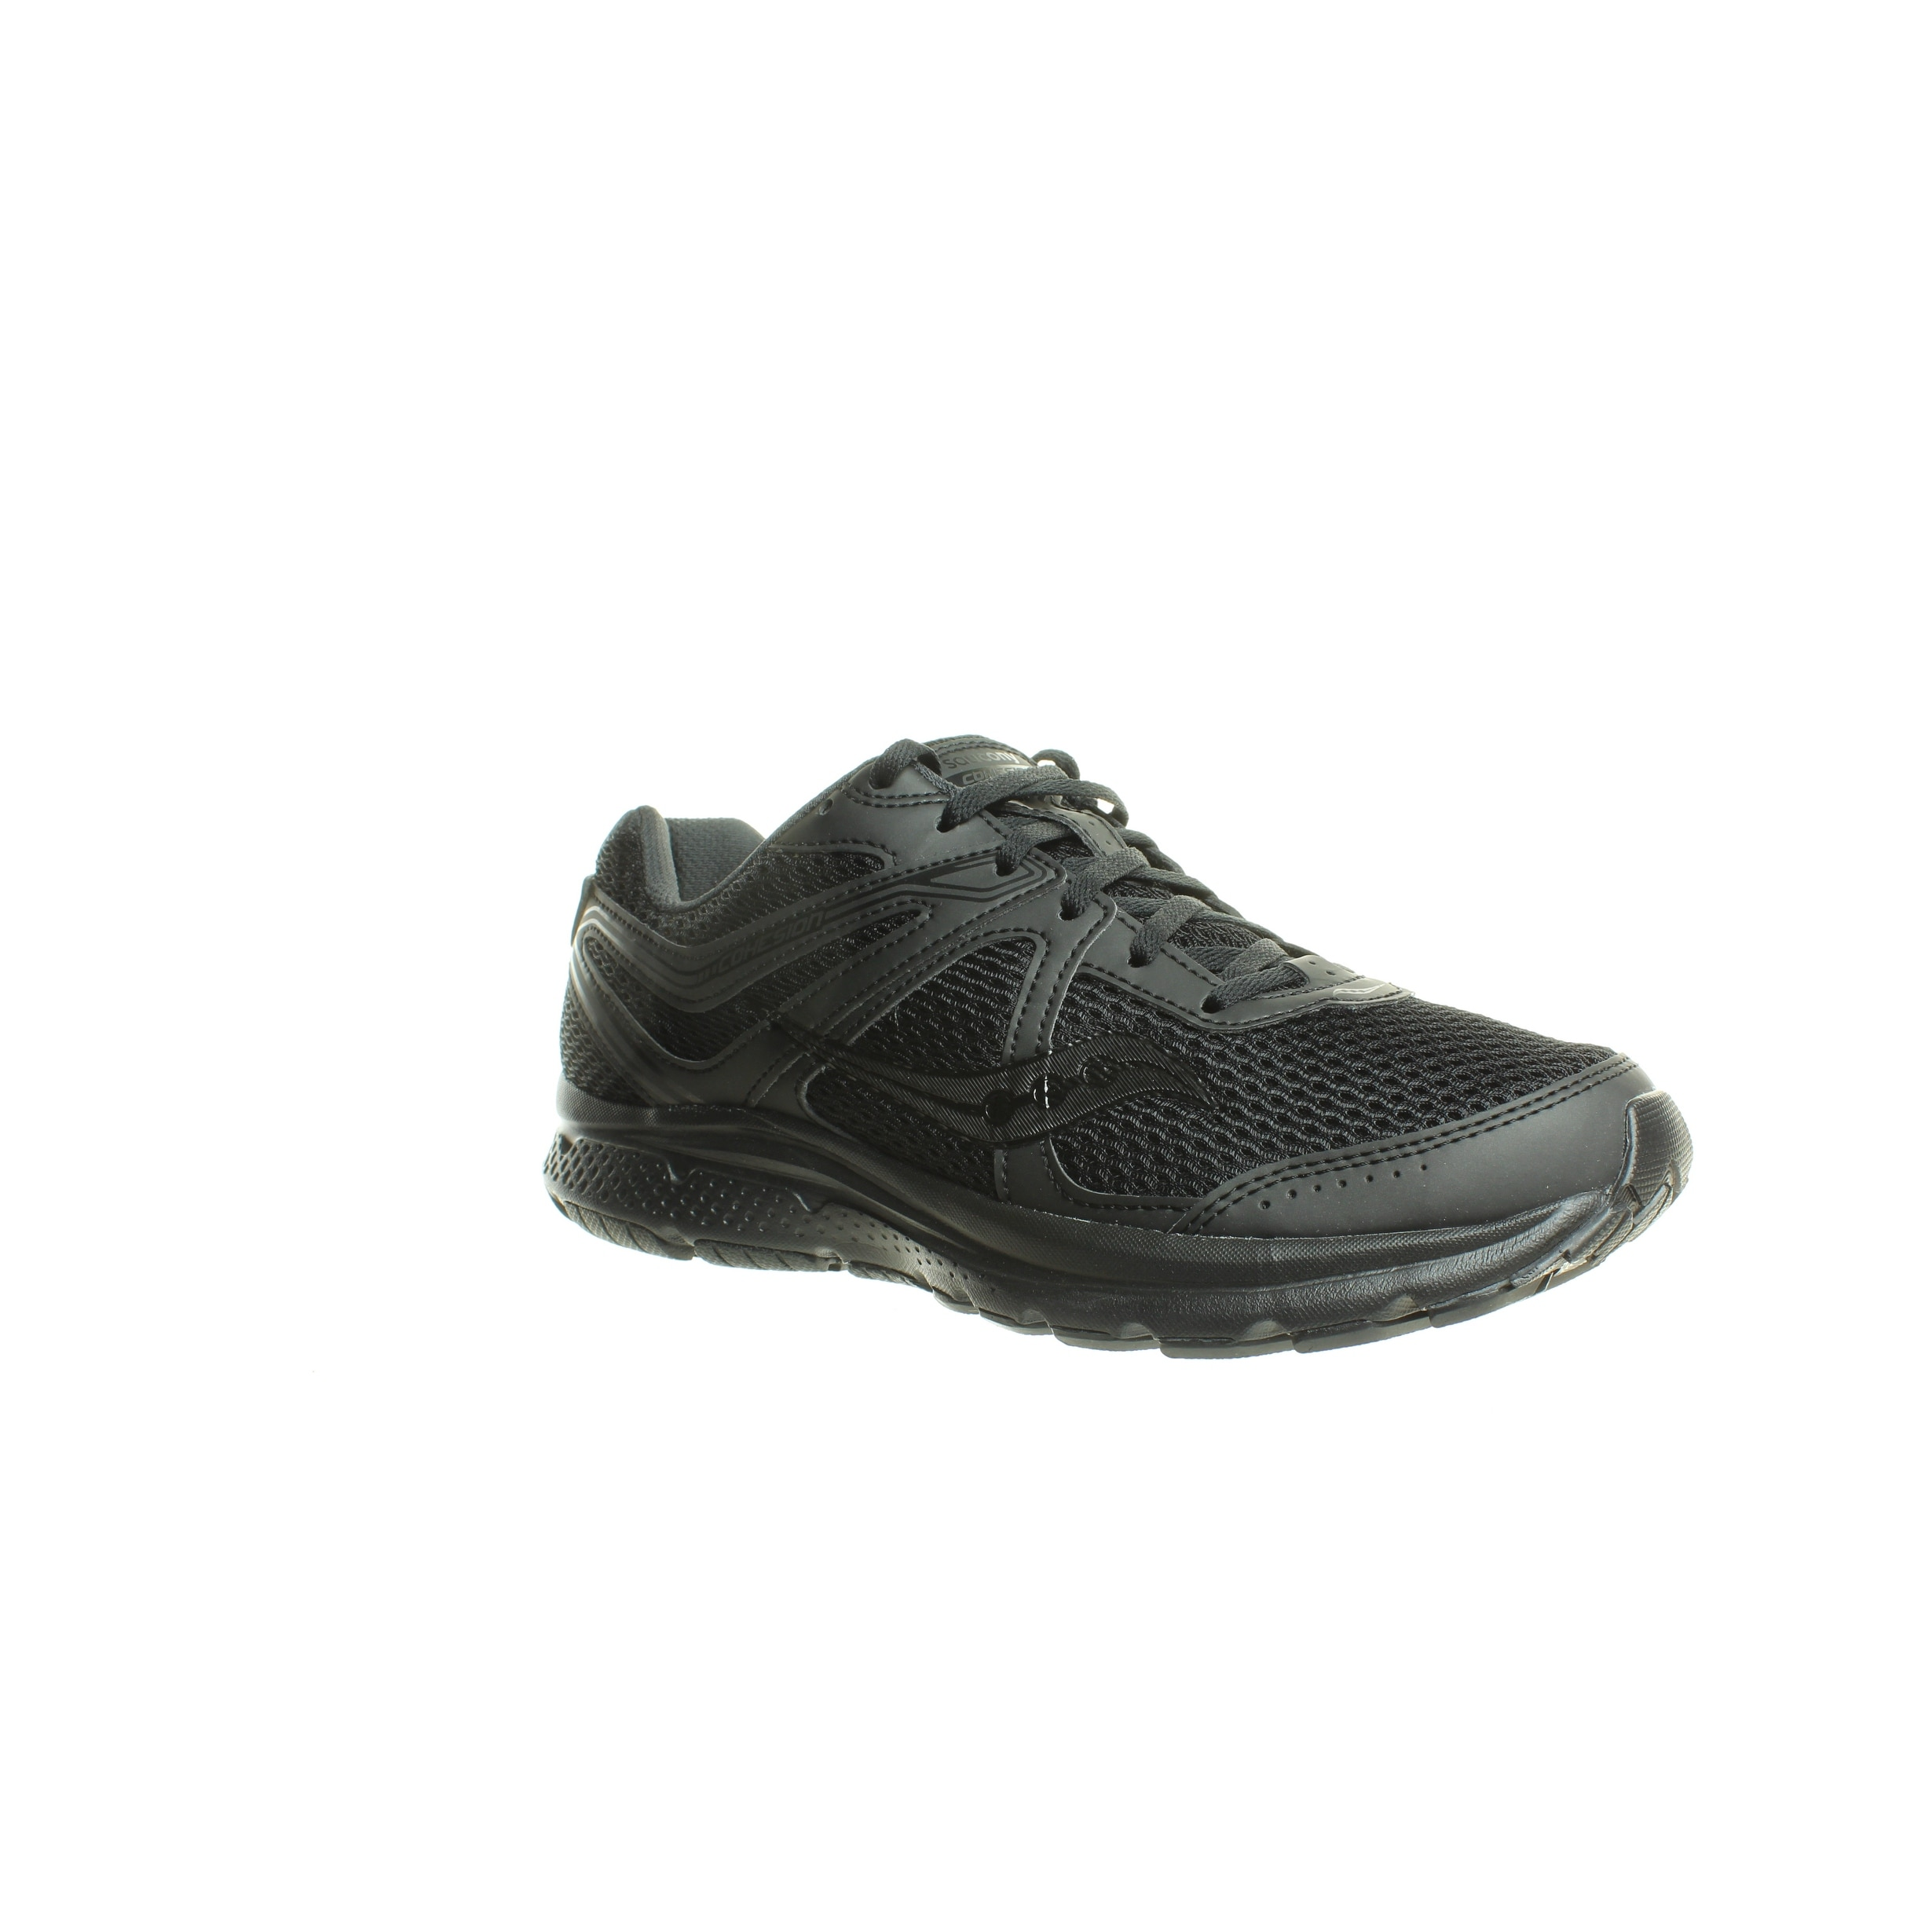 Running Shoes Size 9.5 (Wide